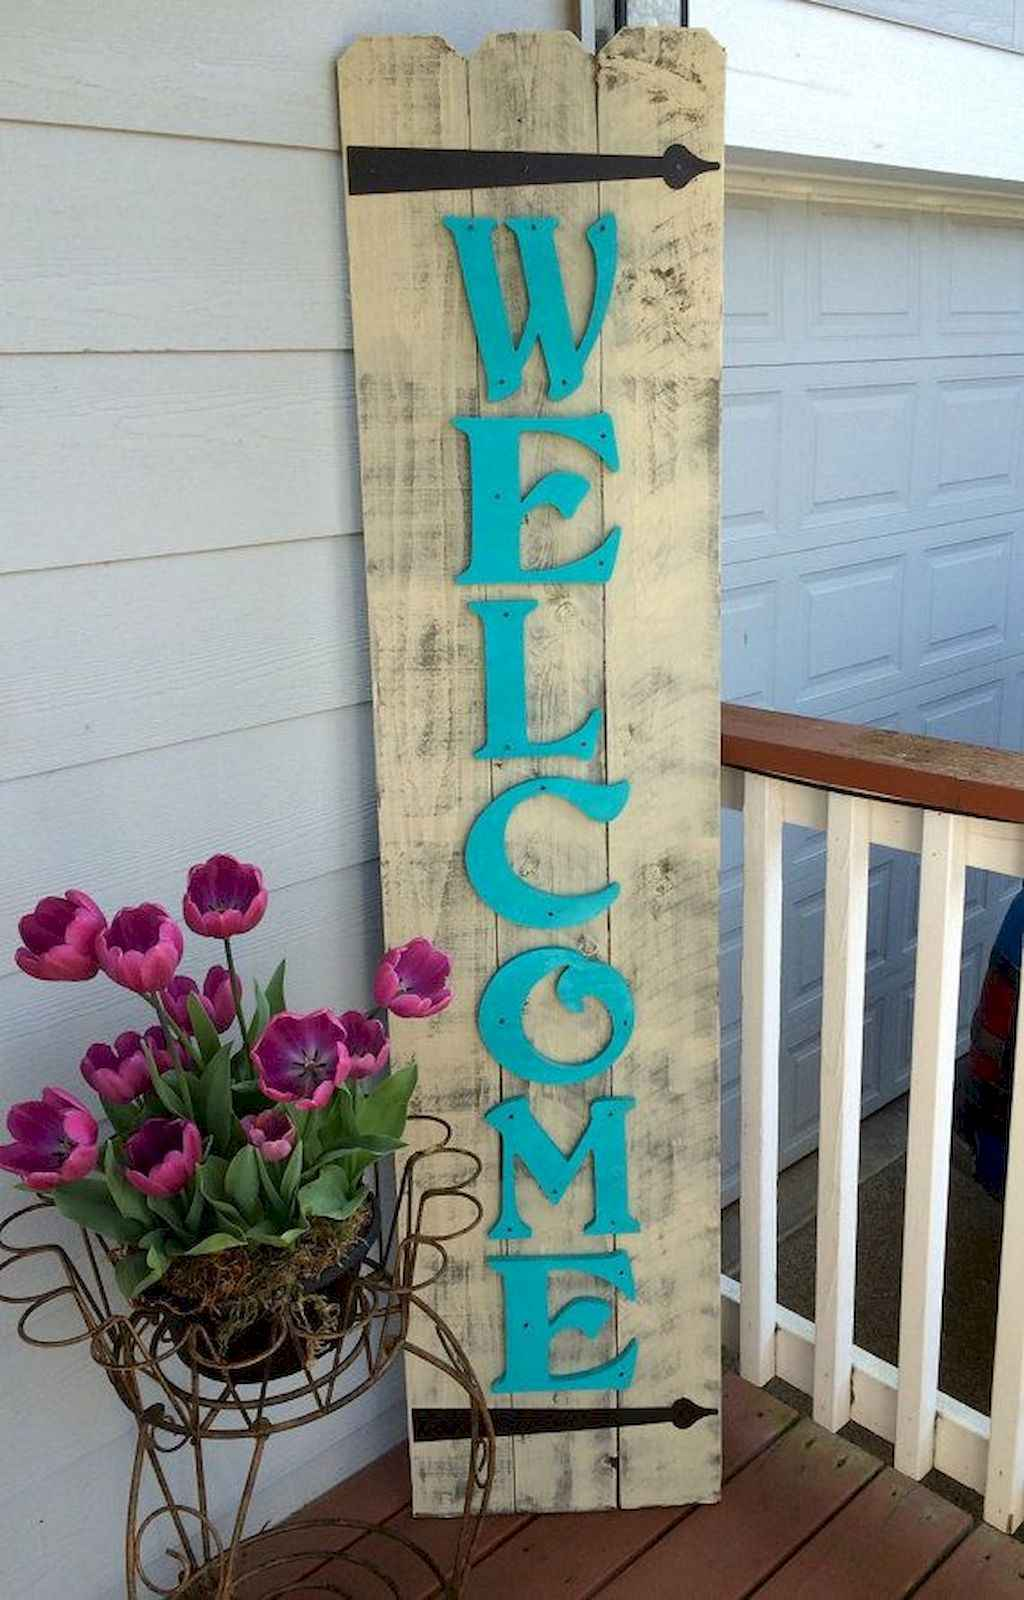 Cleverly diy porch patio decorating ideas (38)